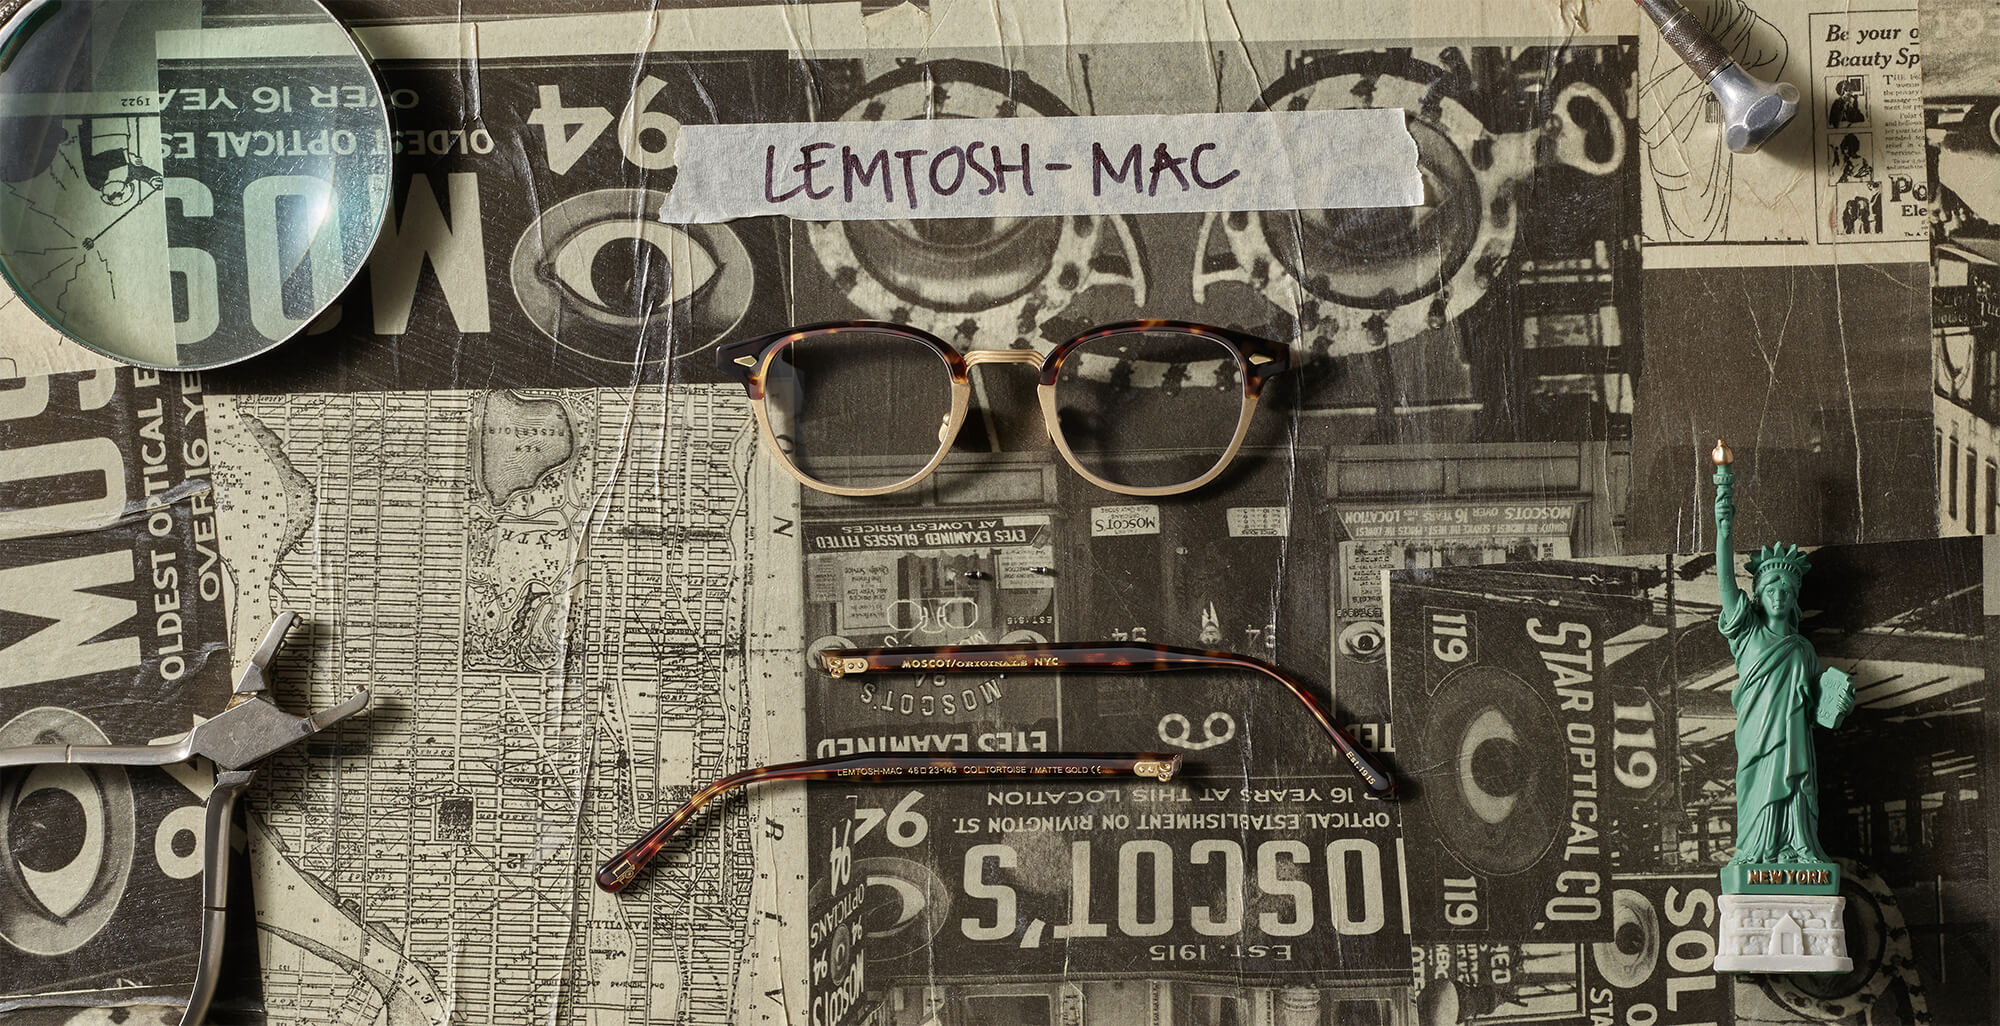 LEMTOSH-MAC